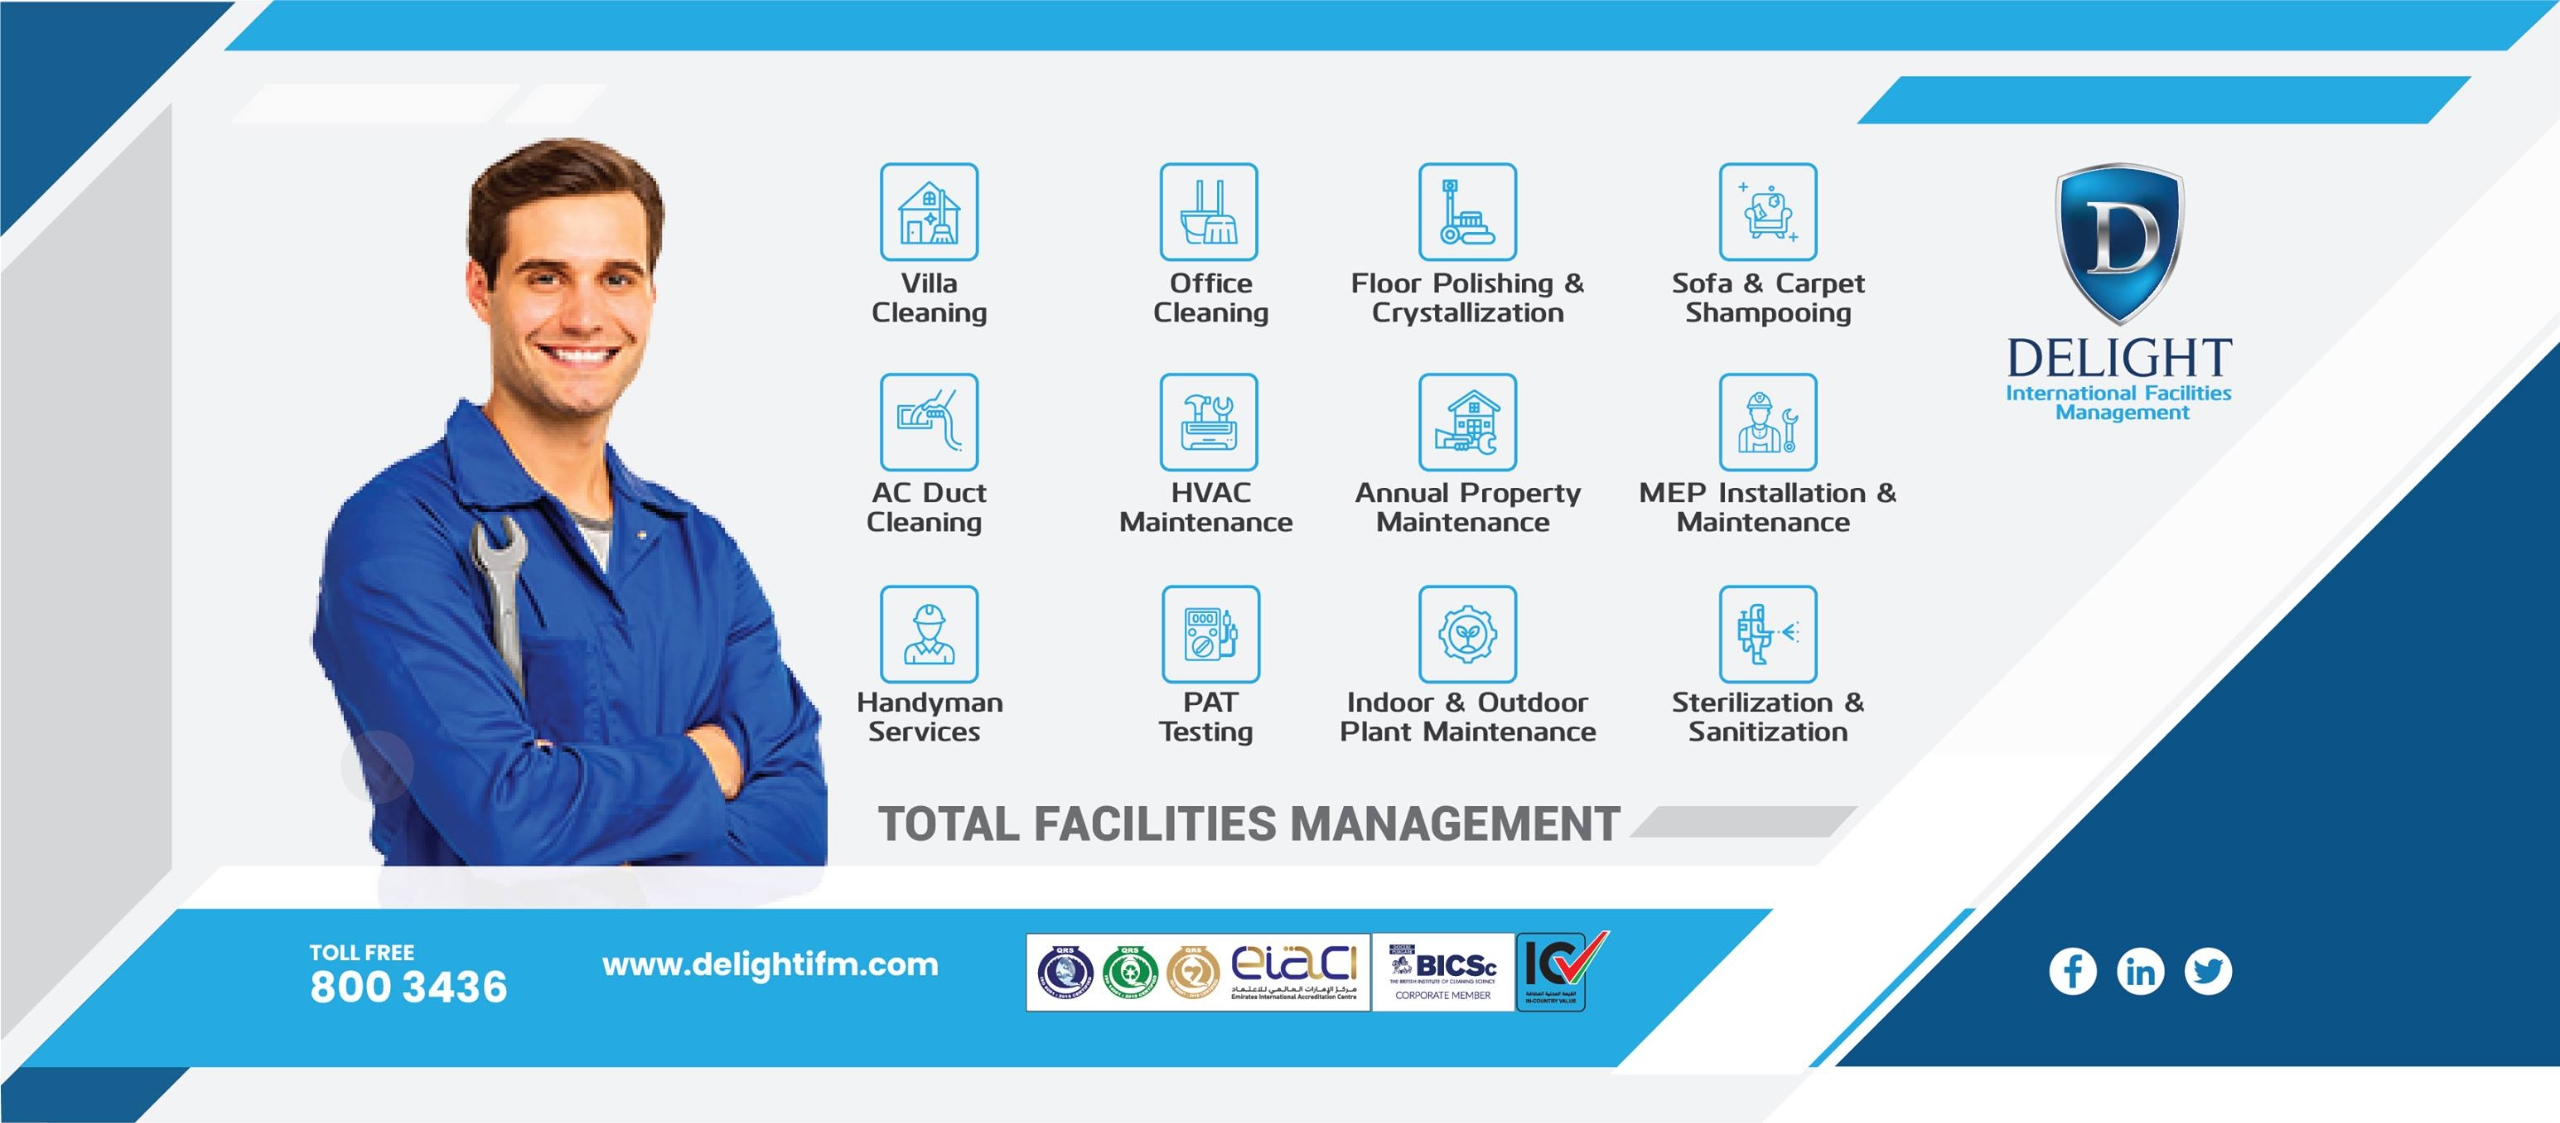 Delight International Facilities Management (@delightifm) Cover Image